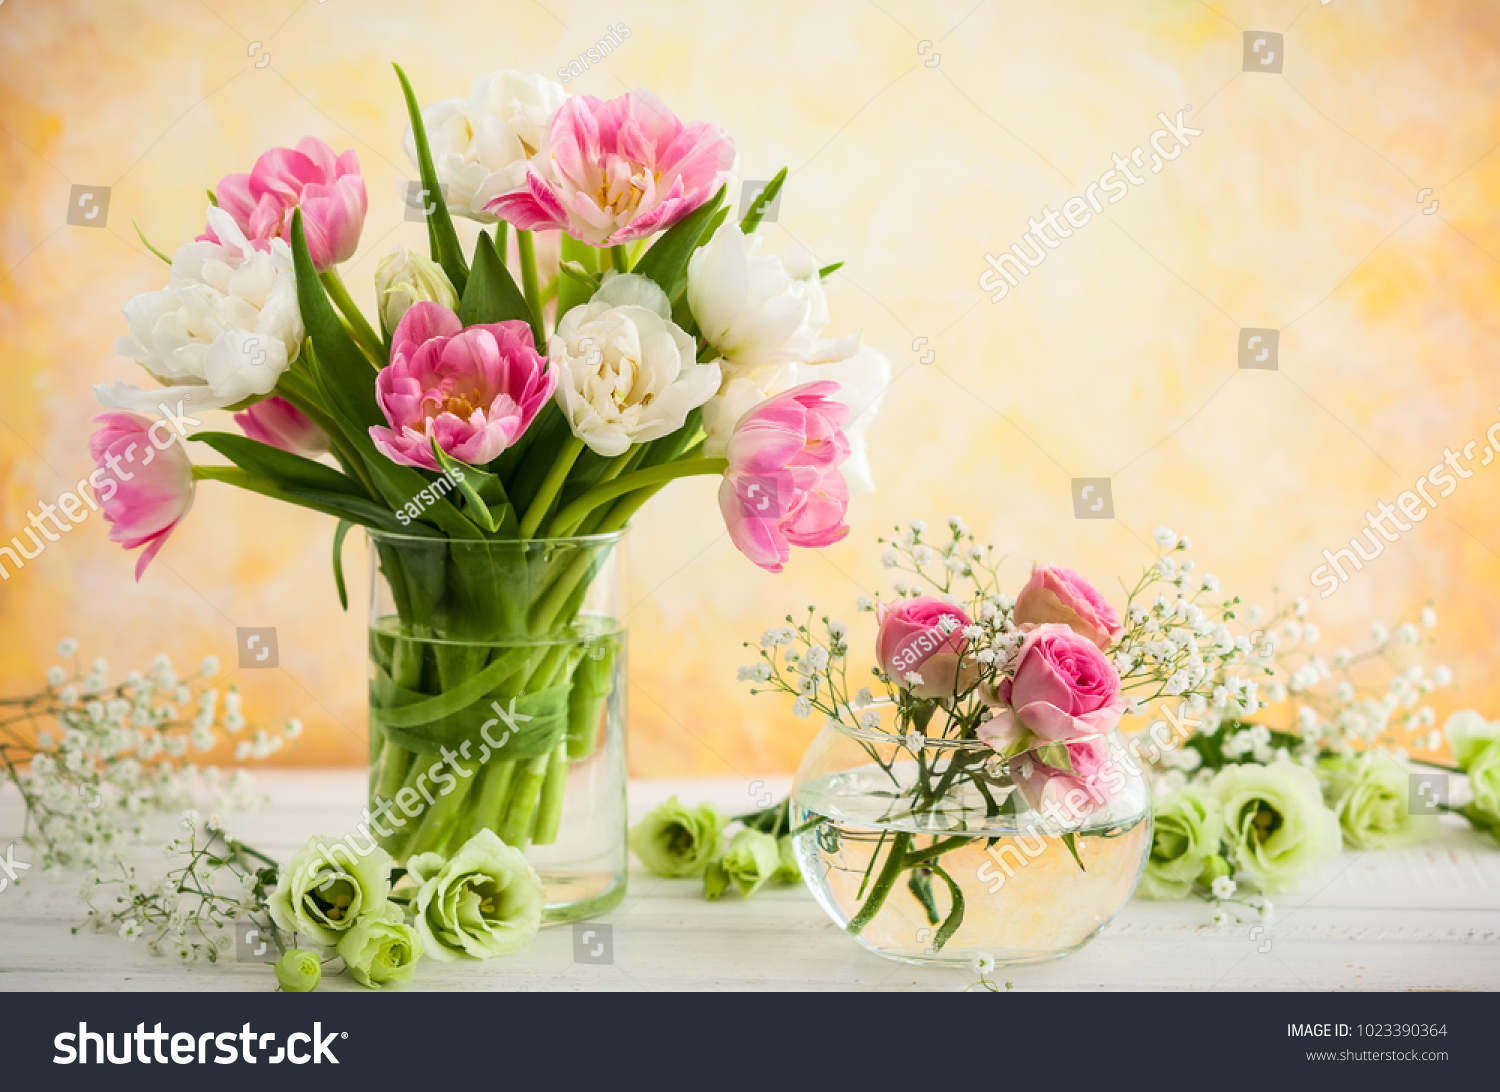 Beautiful flowers bouquet vase on wooden stock photo 1023390364 beautiful flowers bouquet in vase on the wooden tabletulipsroses and eustoma izmirmasajfo Image collections